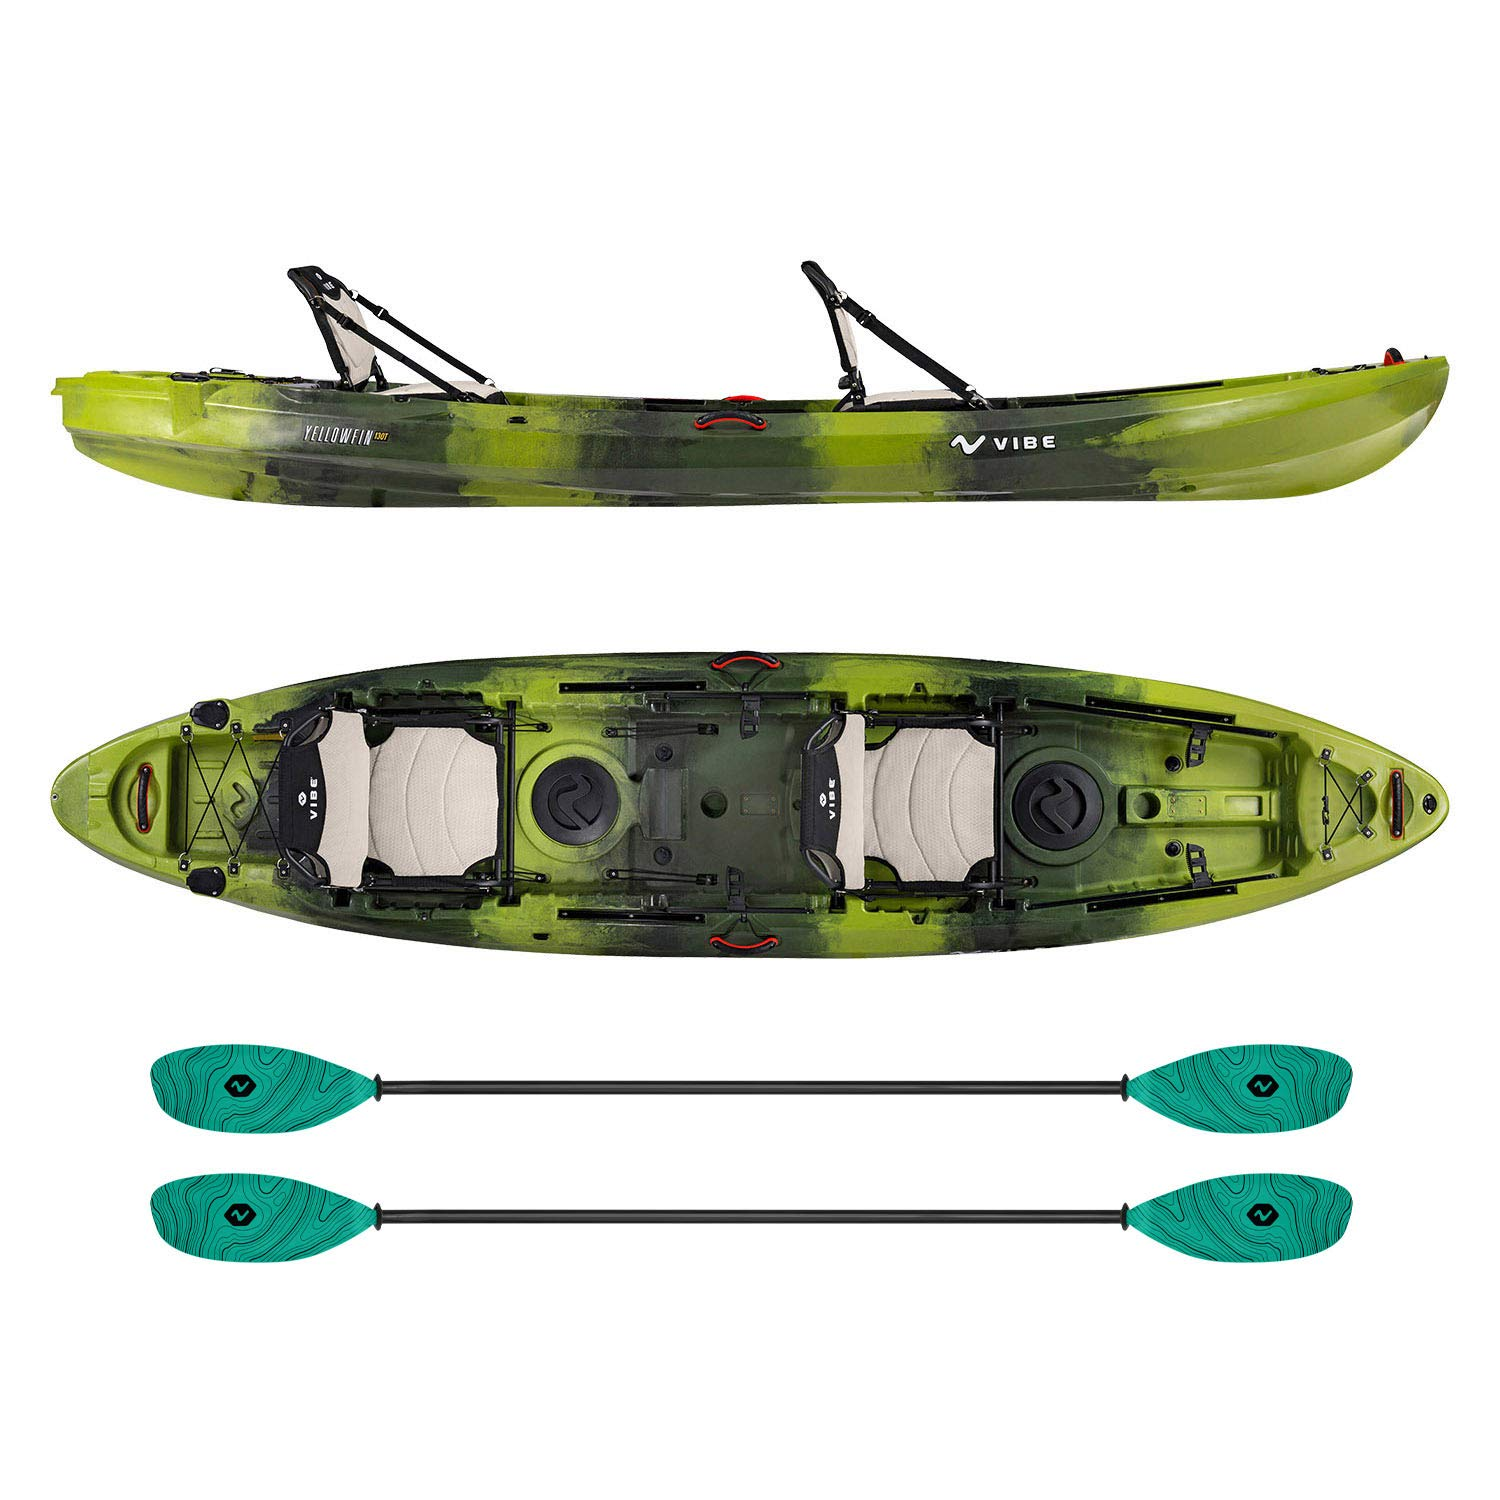 Vibe Kayaks Yellowfin 130T | 13 Foot | Tandem Angler and Recreational Two Person Sit On Top Fishing Kayak with 2 Paddles and 2 Hero Comfort Seats (Moss Camo - Caribbean Blue Evolve Paddle)